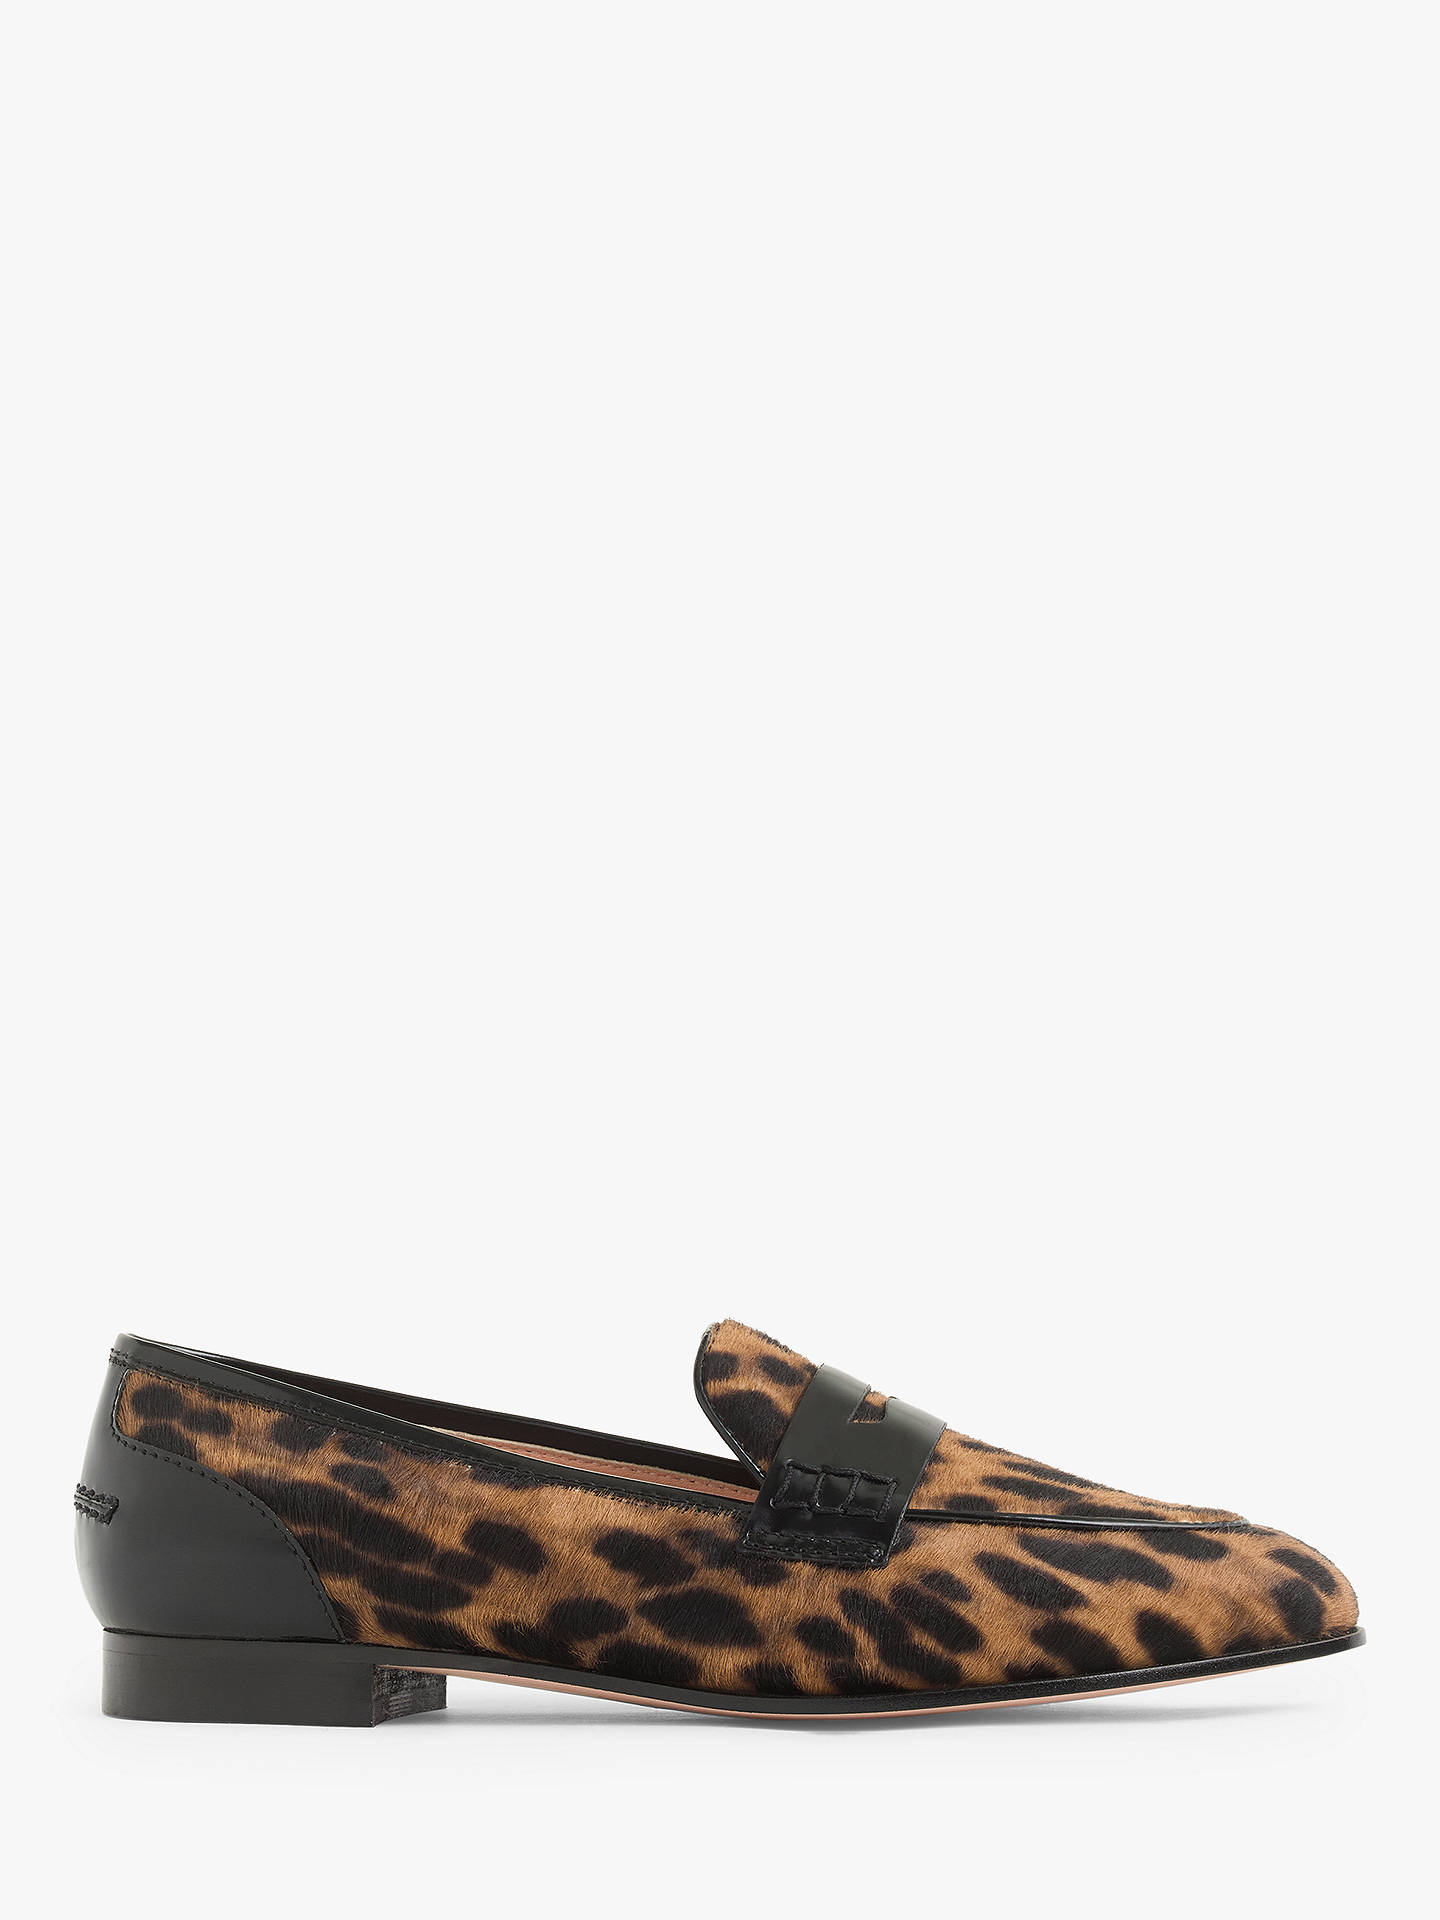 0164048dedb J.Crew Academy Penny Loafers at John Lewis   Partners